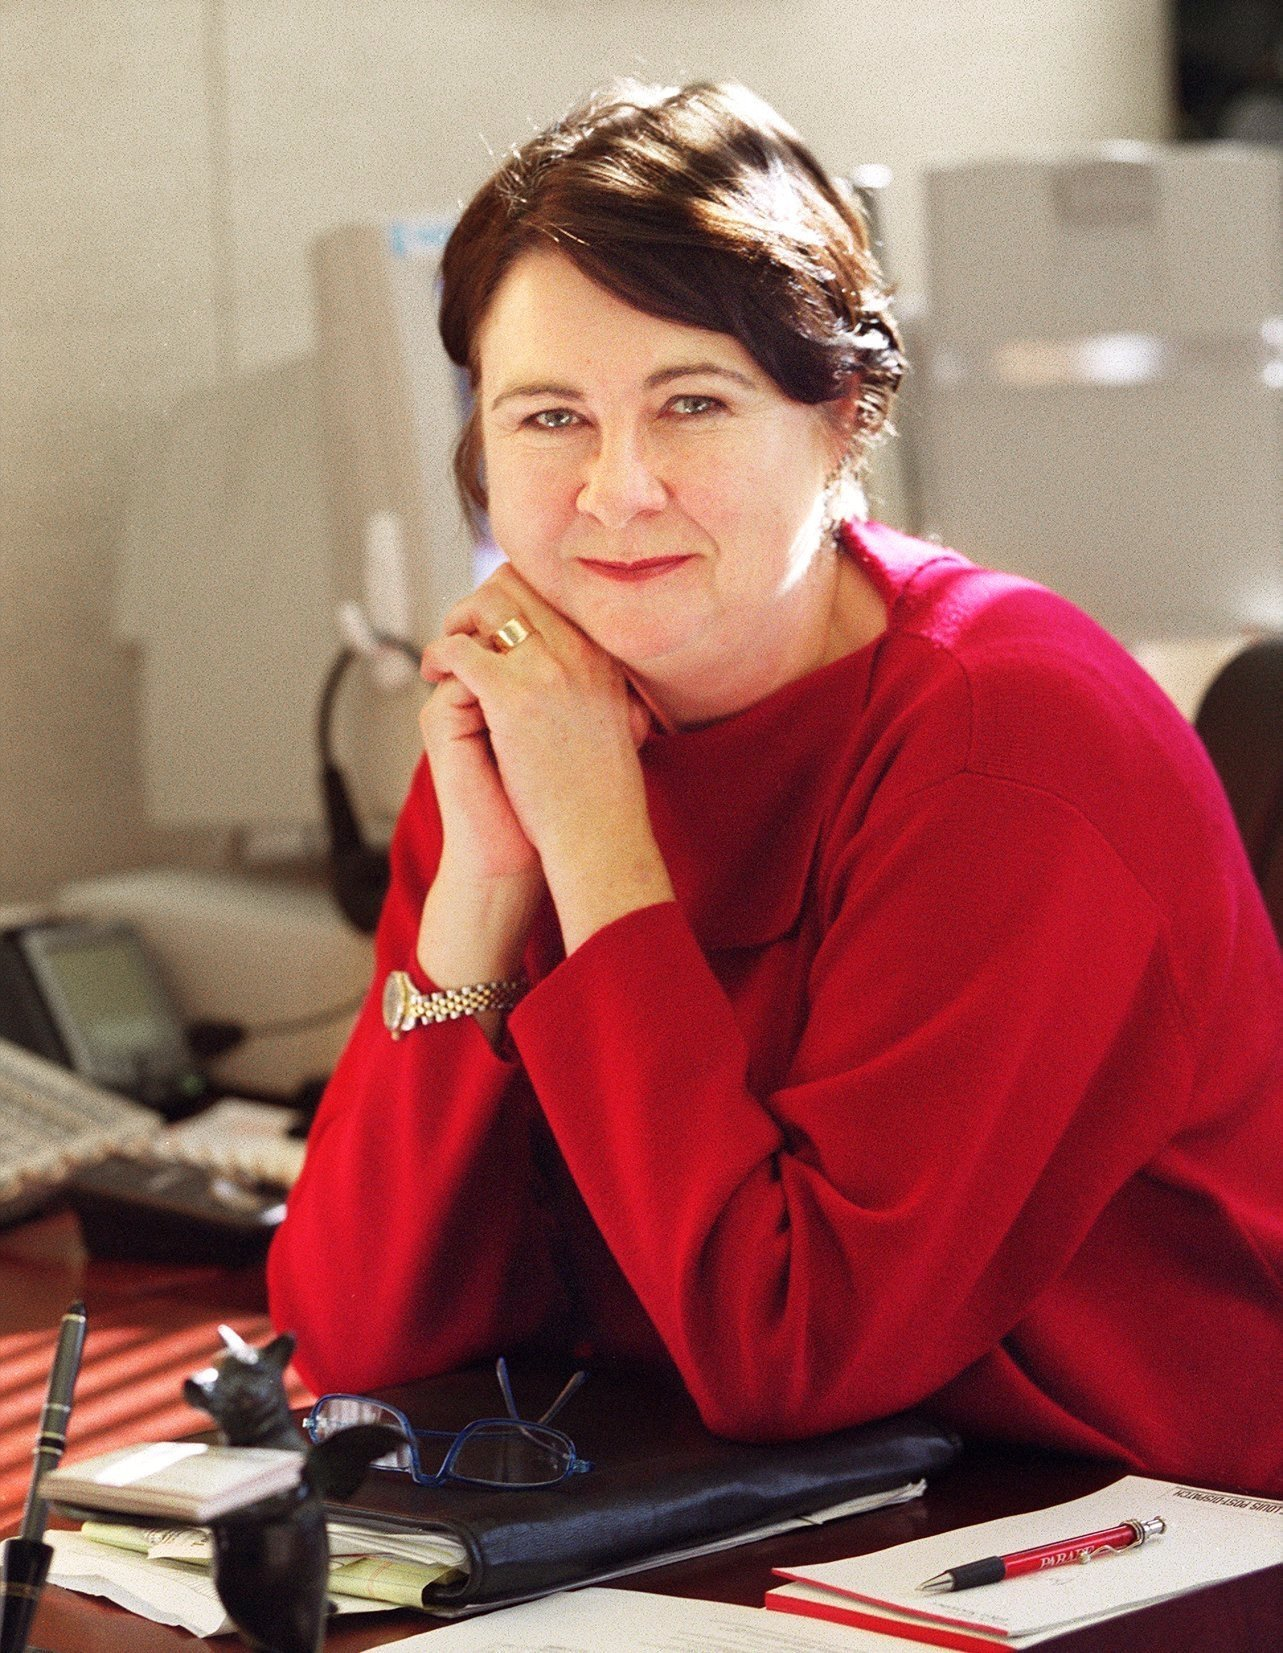 WEDNESDAY, JAN. 2, 2002 - Ellen Soeteber, editor of the St. Louis Post-Dispatch. PHOTO BY JERRY NAUNHEIM JR.